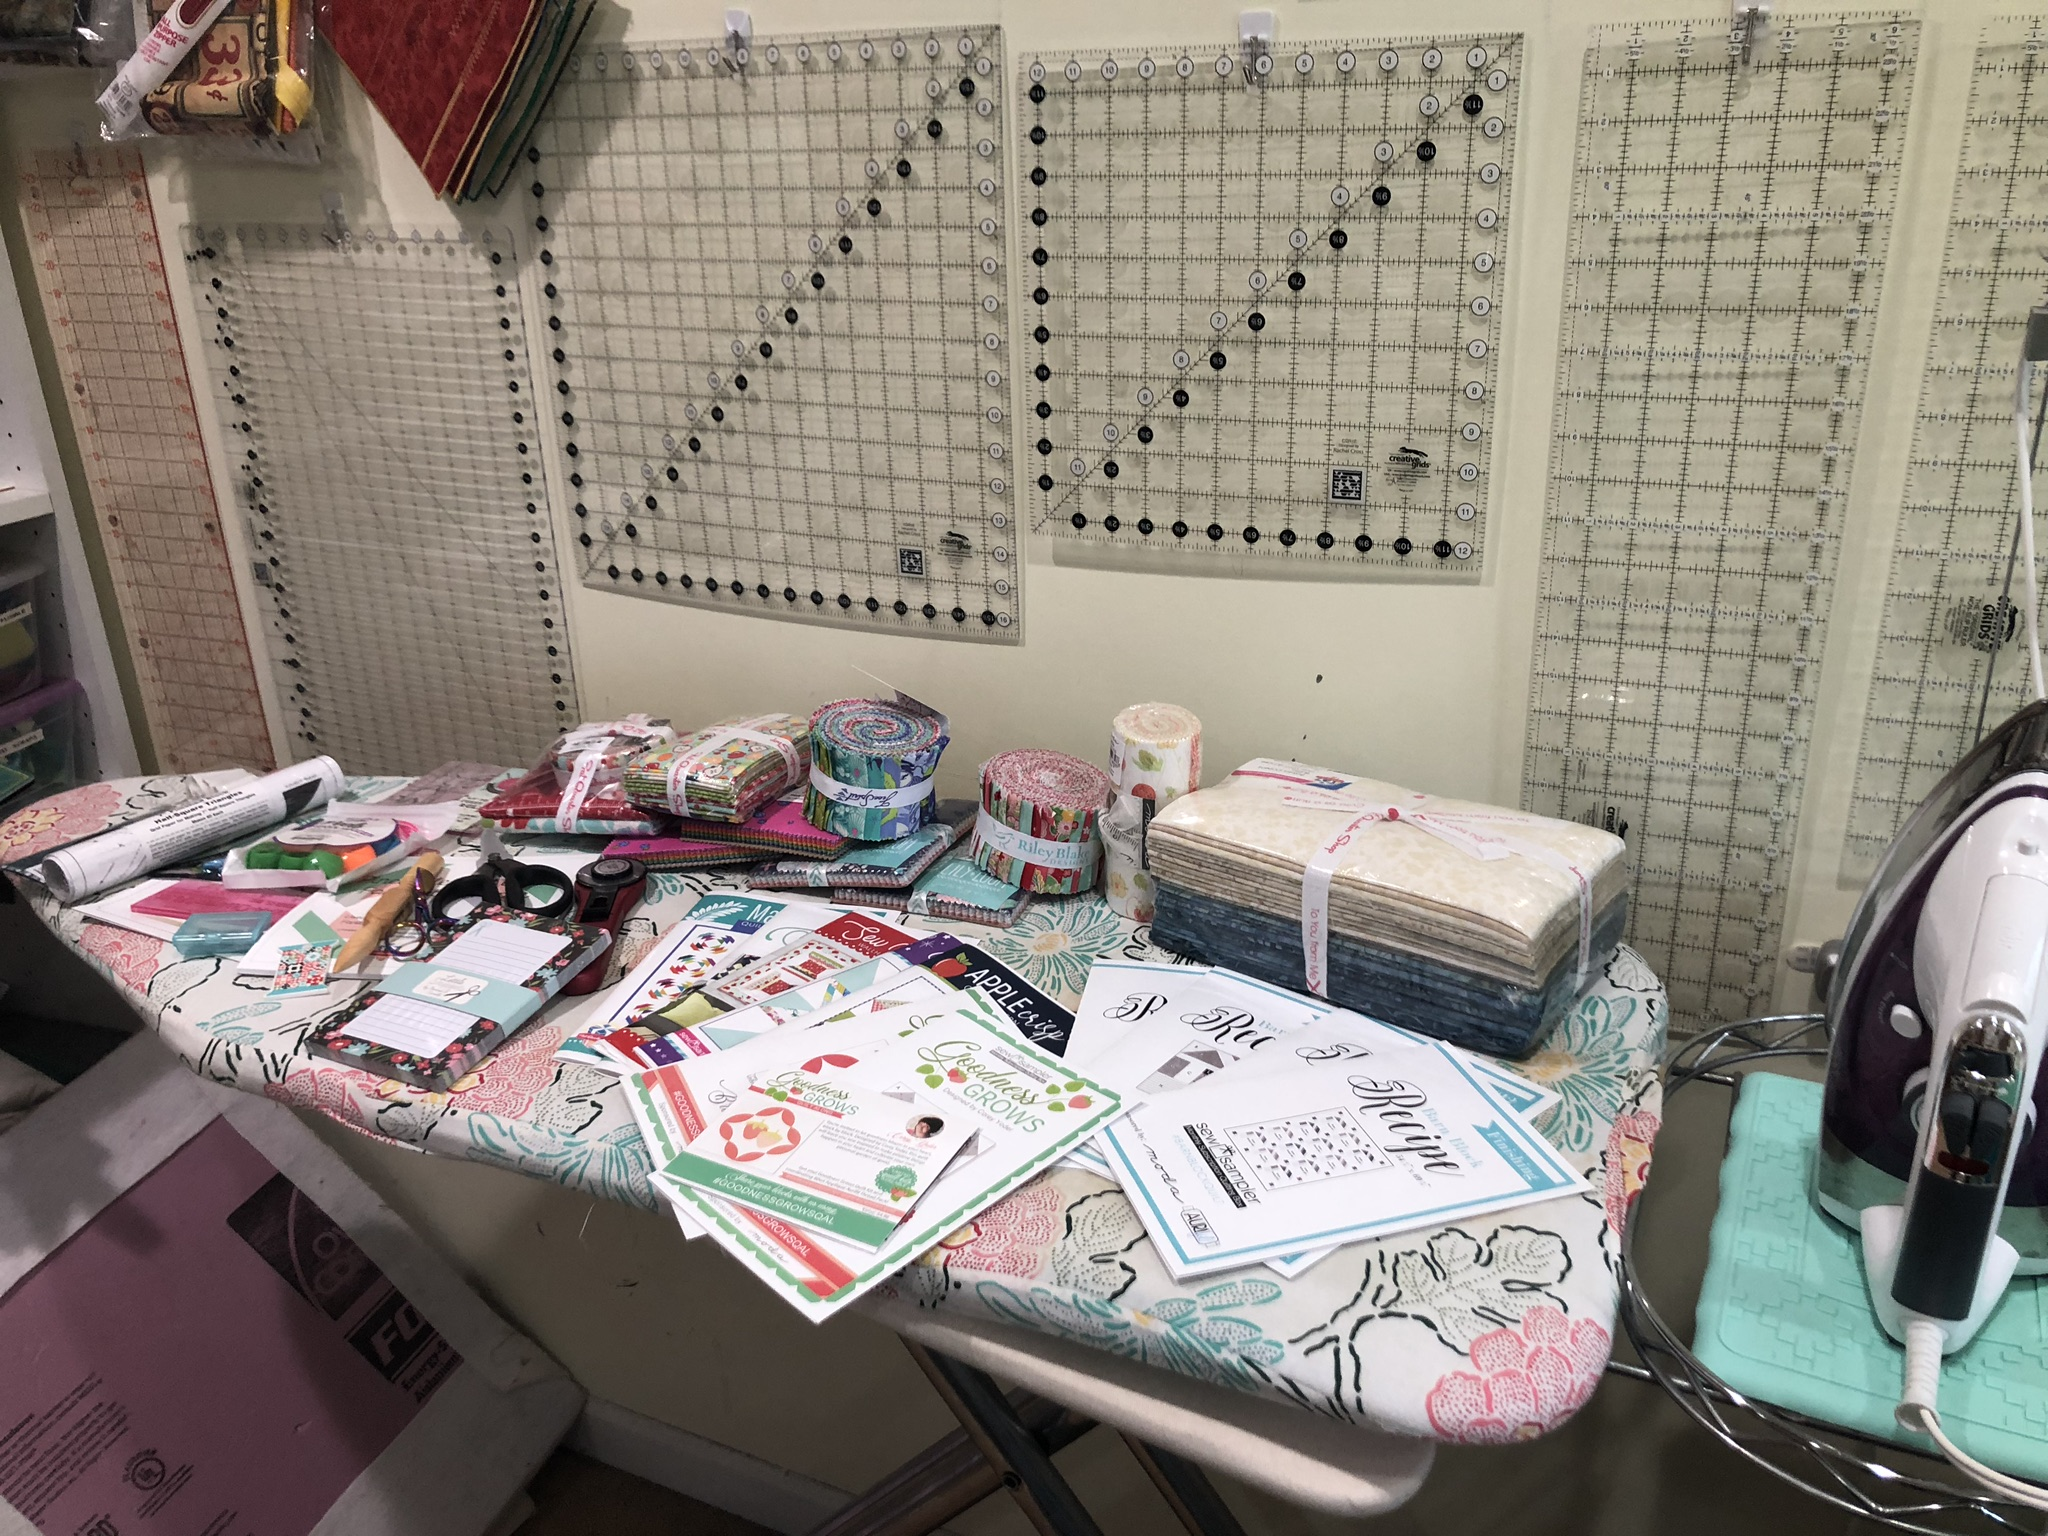 And five months' worth of Sew Sampler boxes, plus a fabric collection from Fat Quarter shop in prep for one niece's wedding quilt